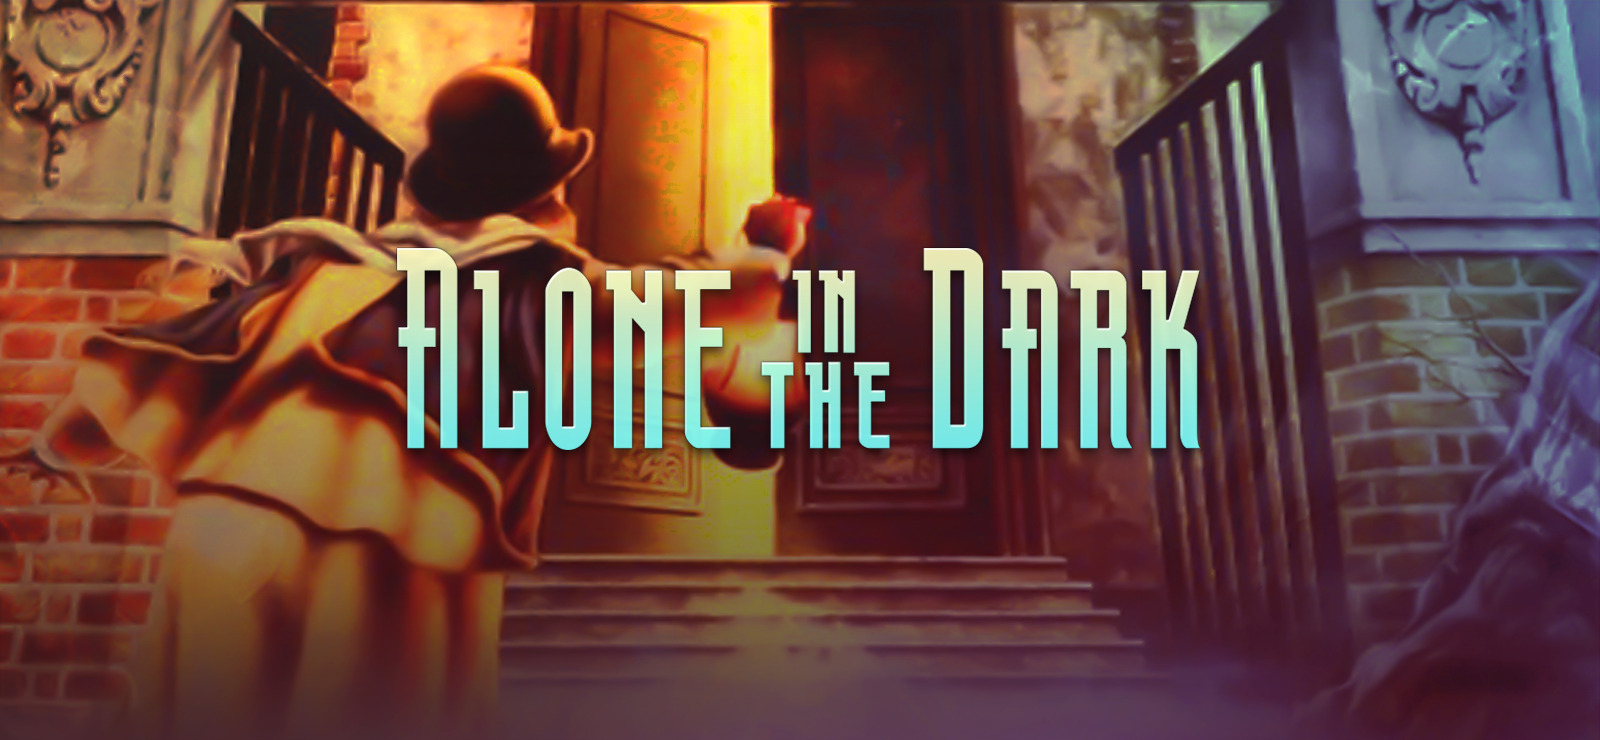 Alone In The Dark The Trilogy 1 2 3 On Gog Com